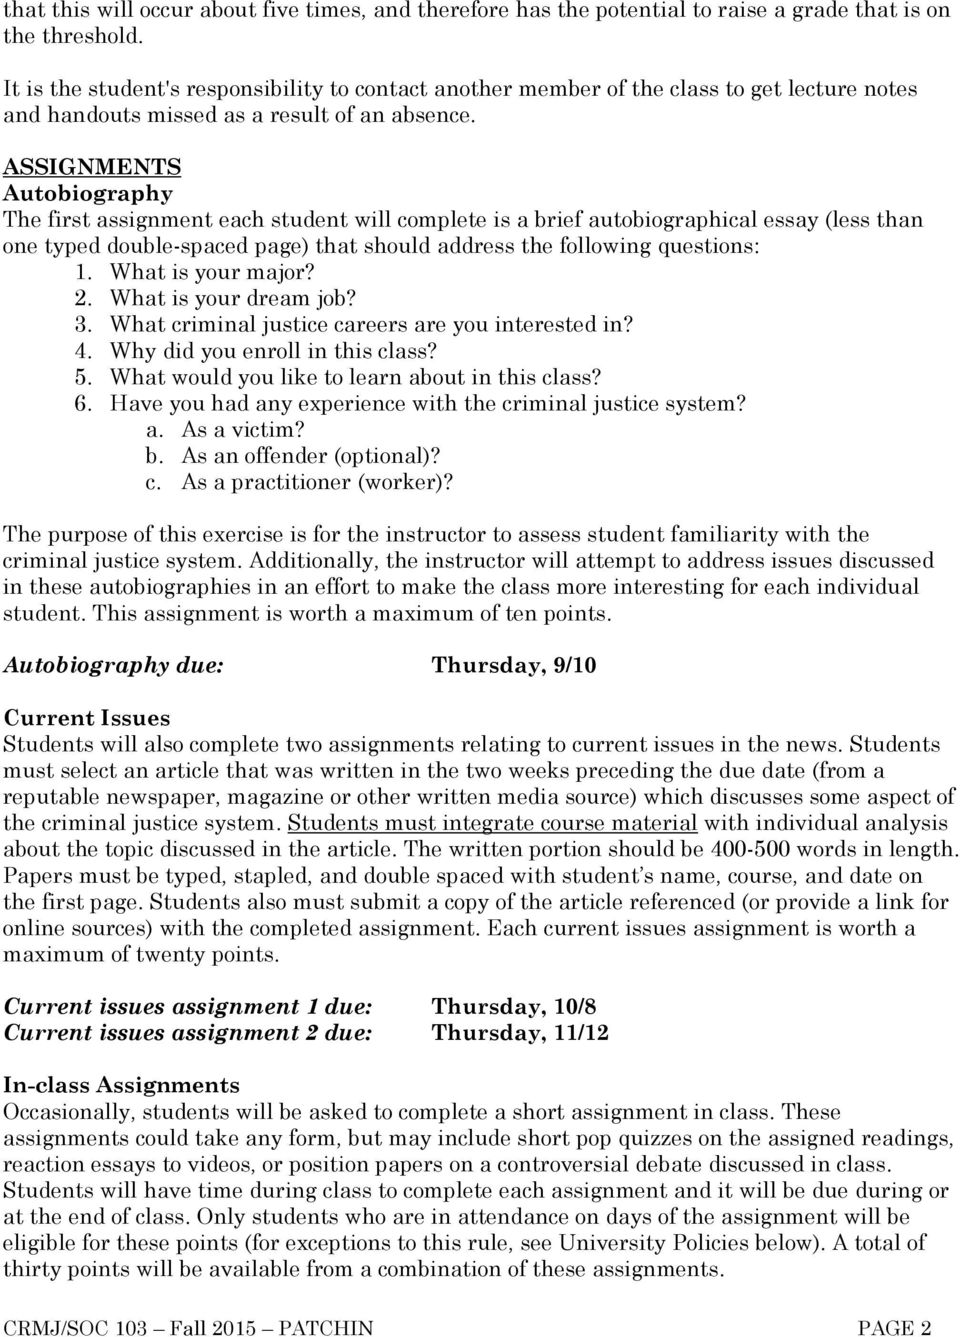 ASSIGNMENTS Autobiography The first assignment each student will complete is a brief autobiographical essay (less than one typed double-spaced page) that should address the following questions: 1.